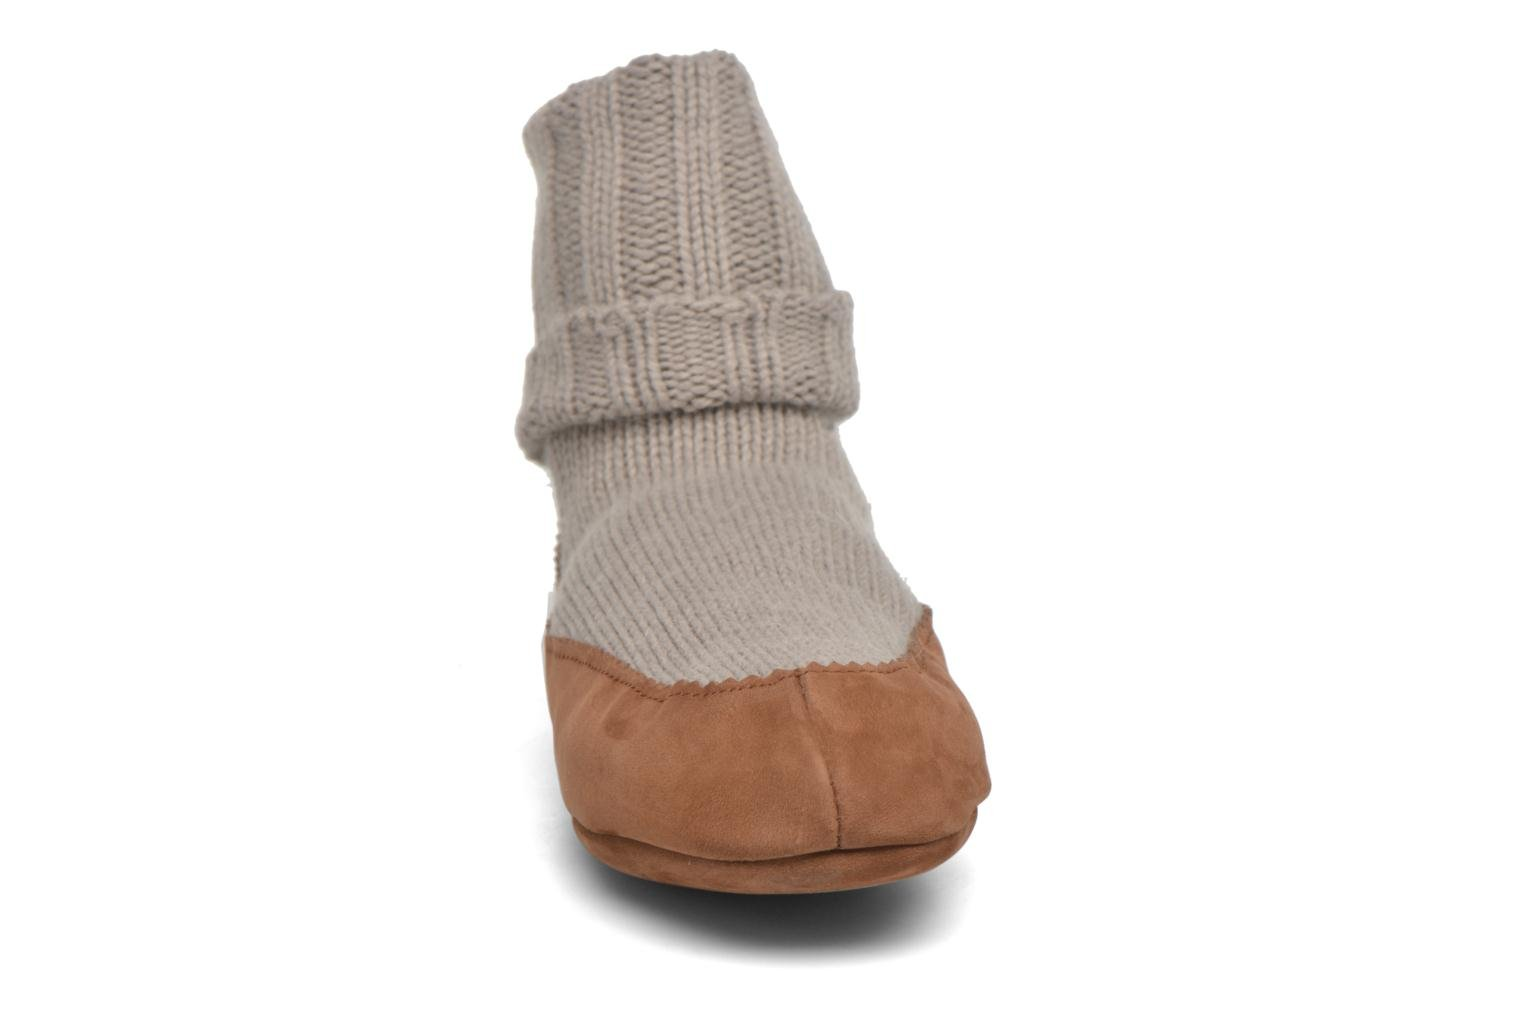 Chaussons-chaussettes Cottage Socke 4779